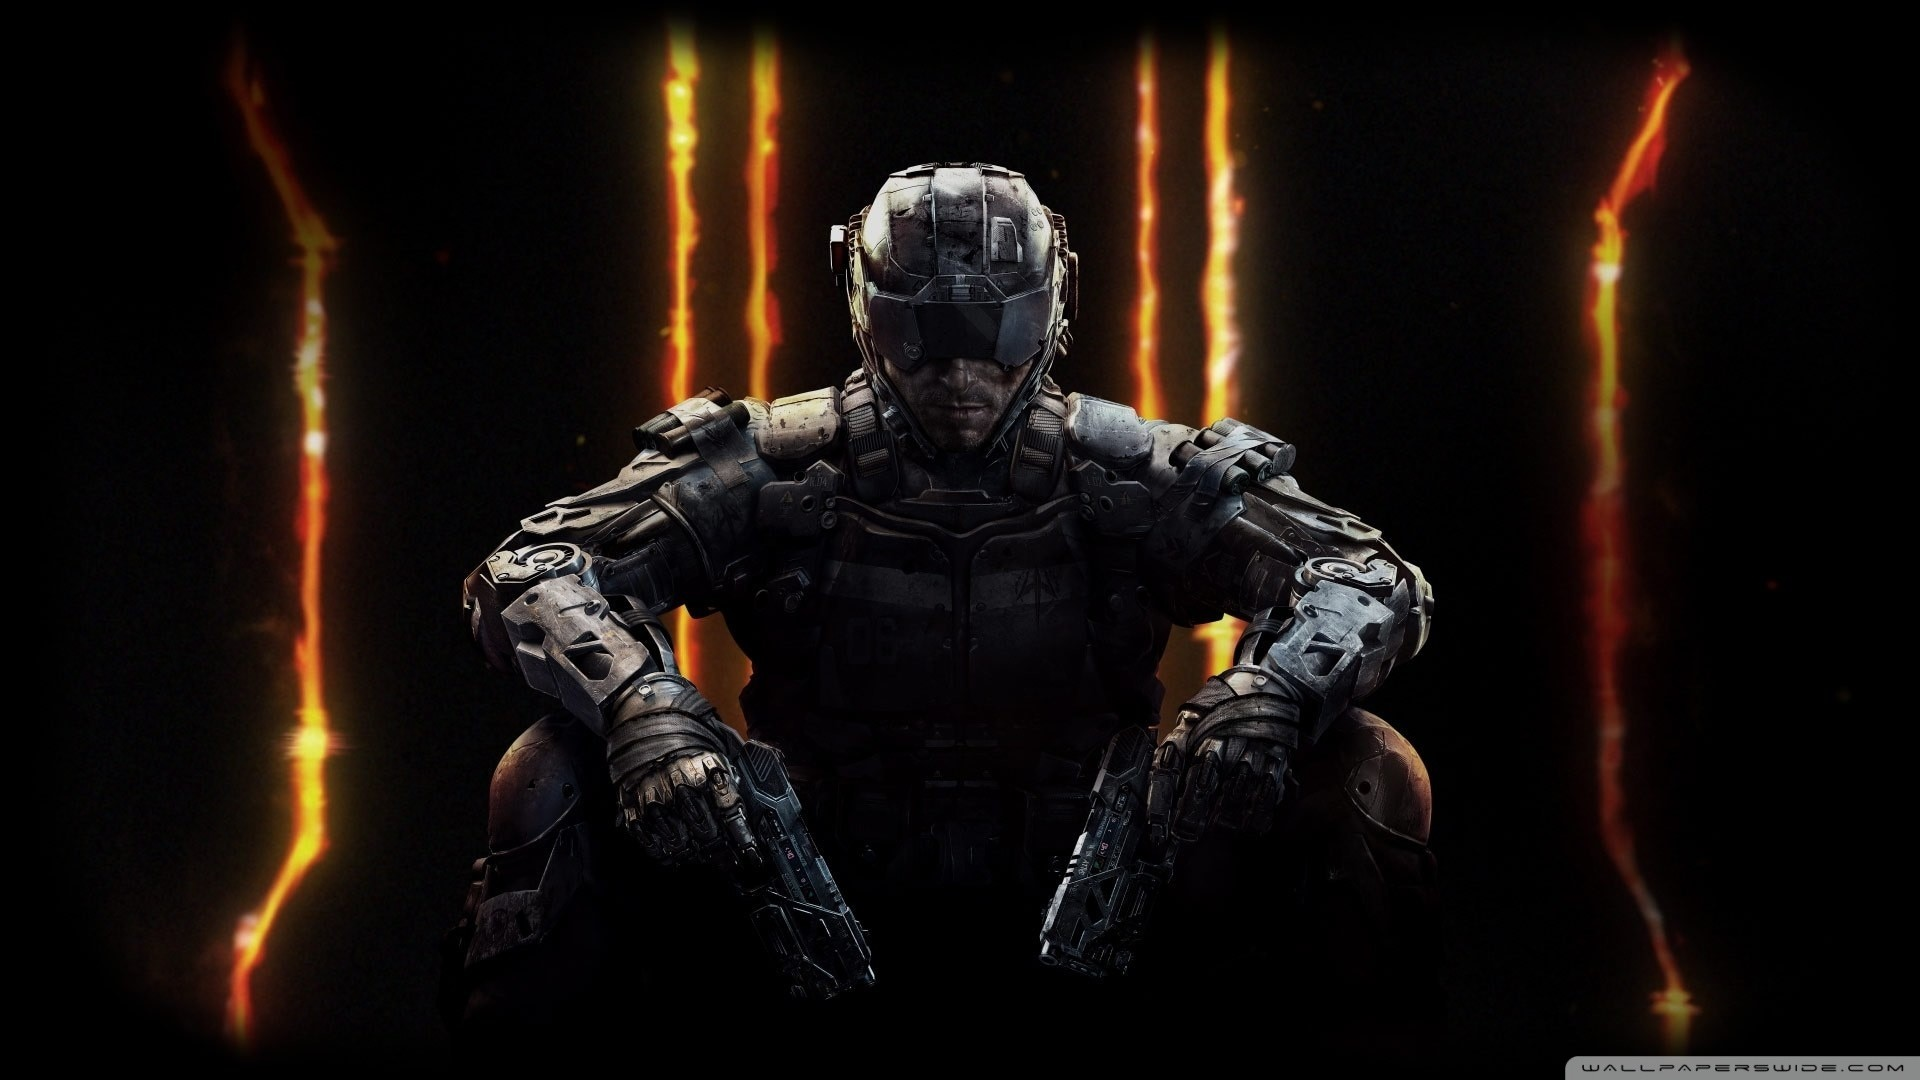 1920x1080  1024x768 dual wallpaper - Call of Duty Black Ops 3 HD Wide  Wallpaper for 4K